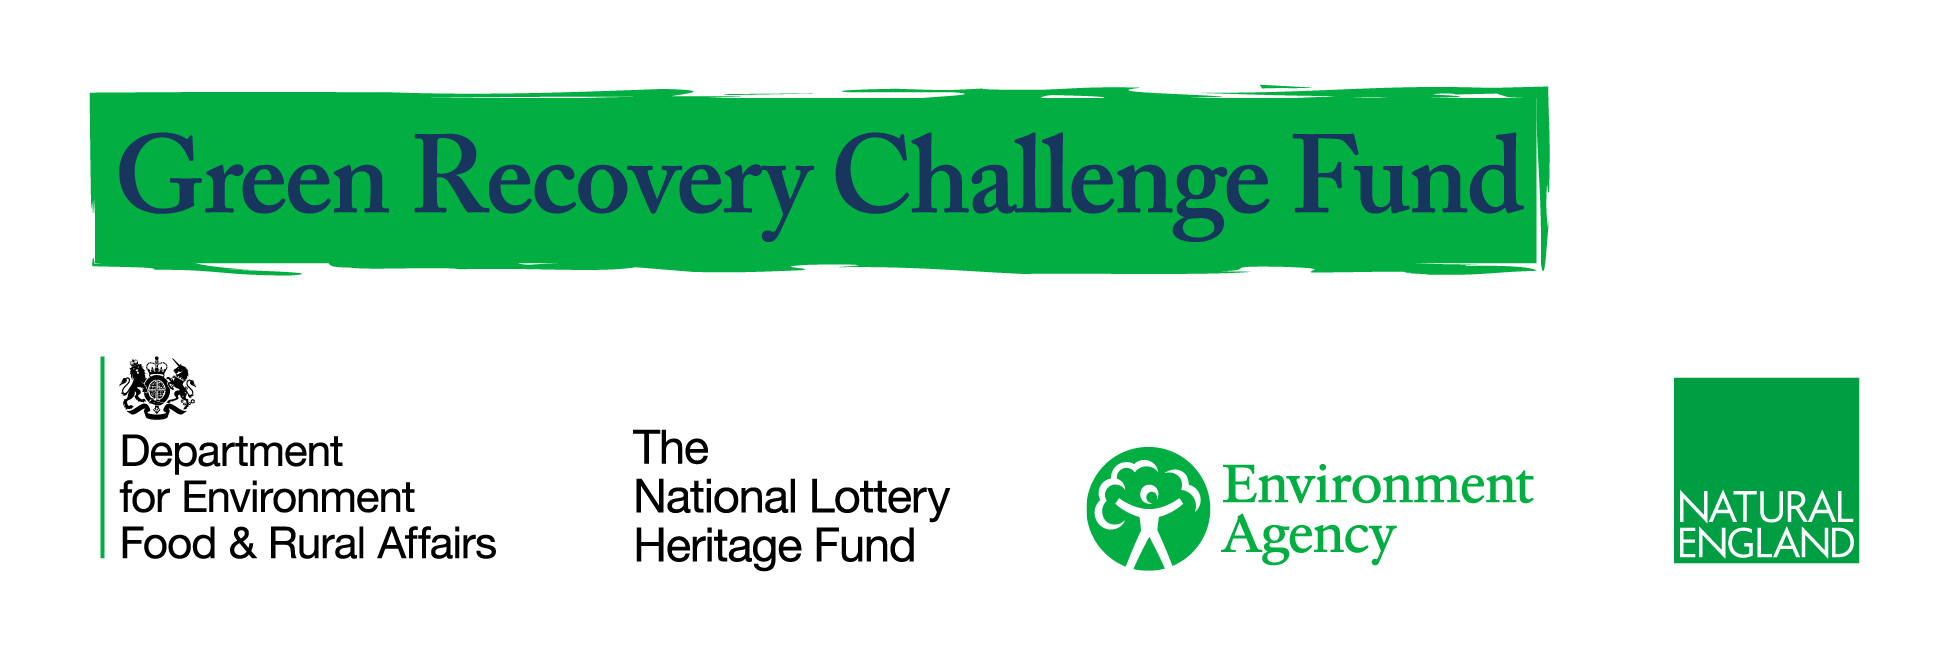 Green Recovery Challenge Fund Logo